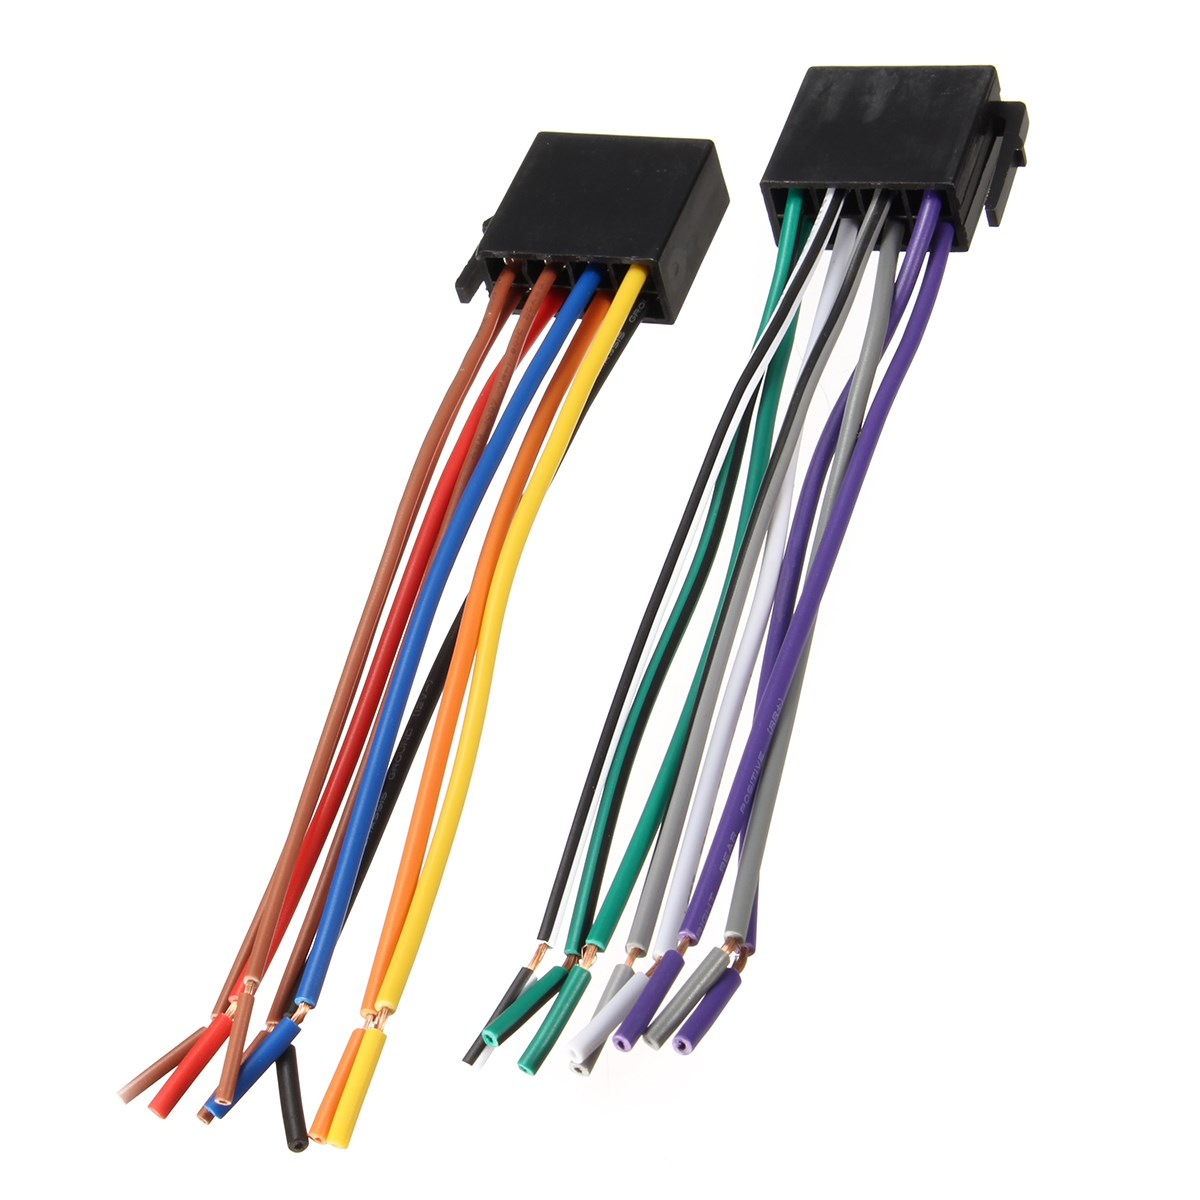 Stereo wiring connectors wiring circuit universal wire harness adapter connector cable radio wiring rh aliexpress com stereo wiring kit install car swarovskicordoba Gallery